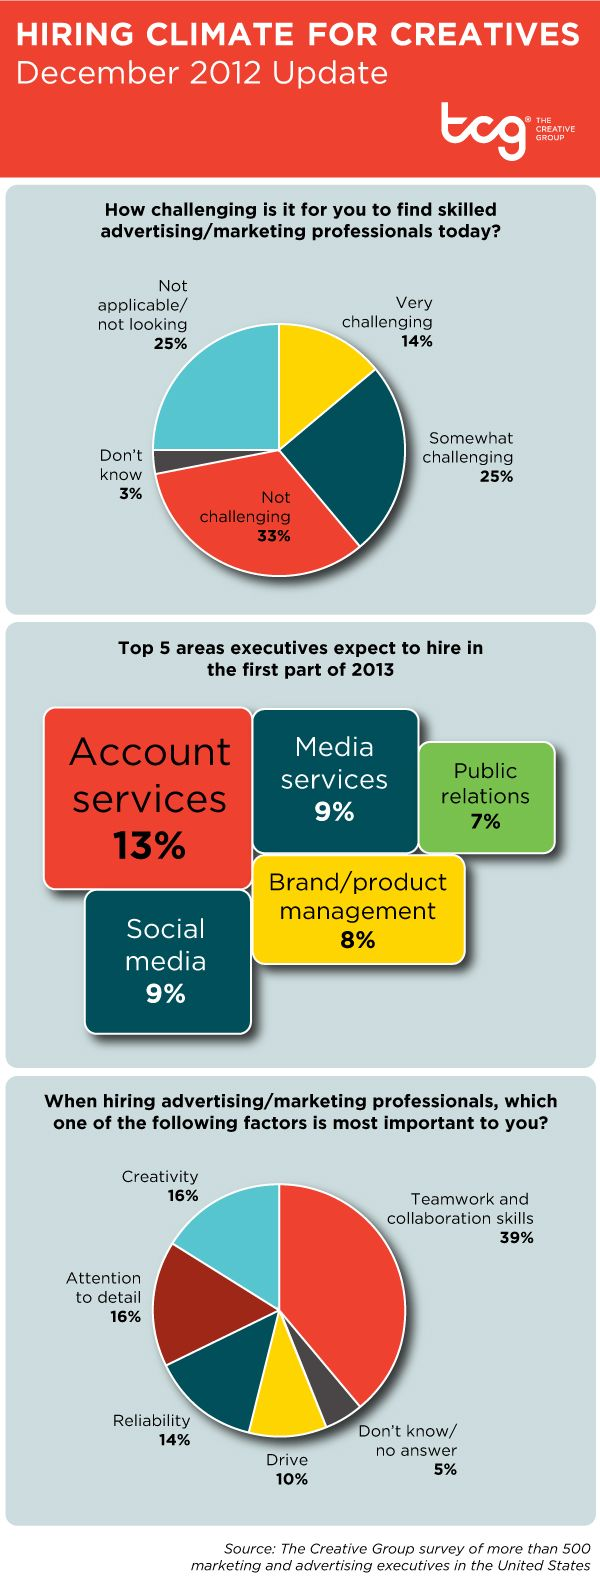 best images about workplace news creative midsize advertising agencies are expected to see the most recruiting activity in the first part of do you have skills employers seek